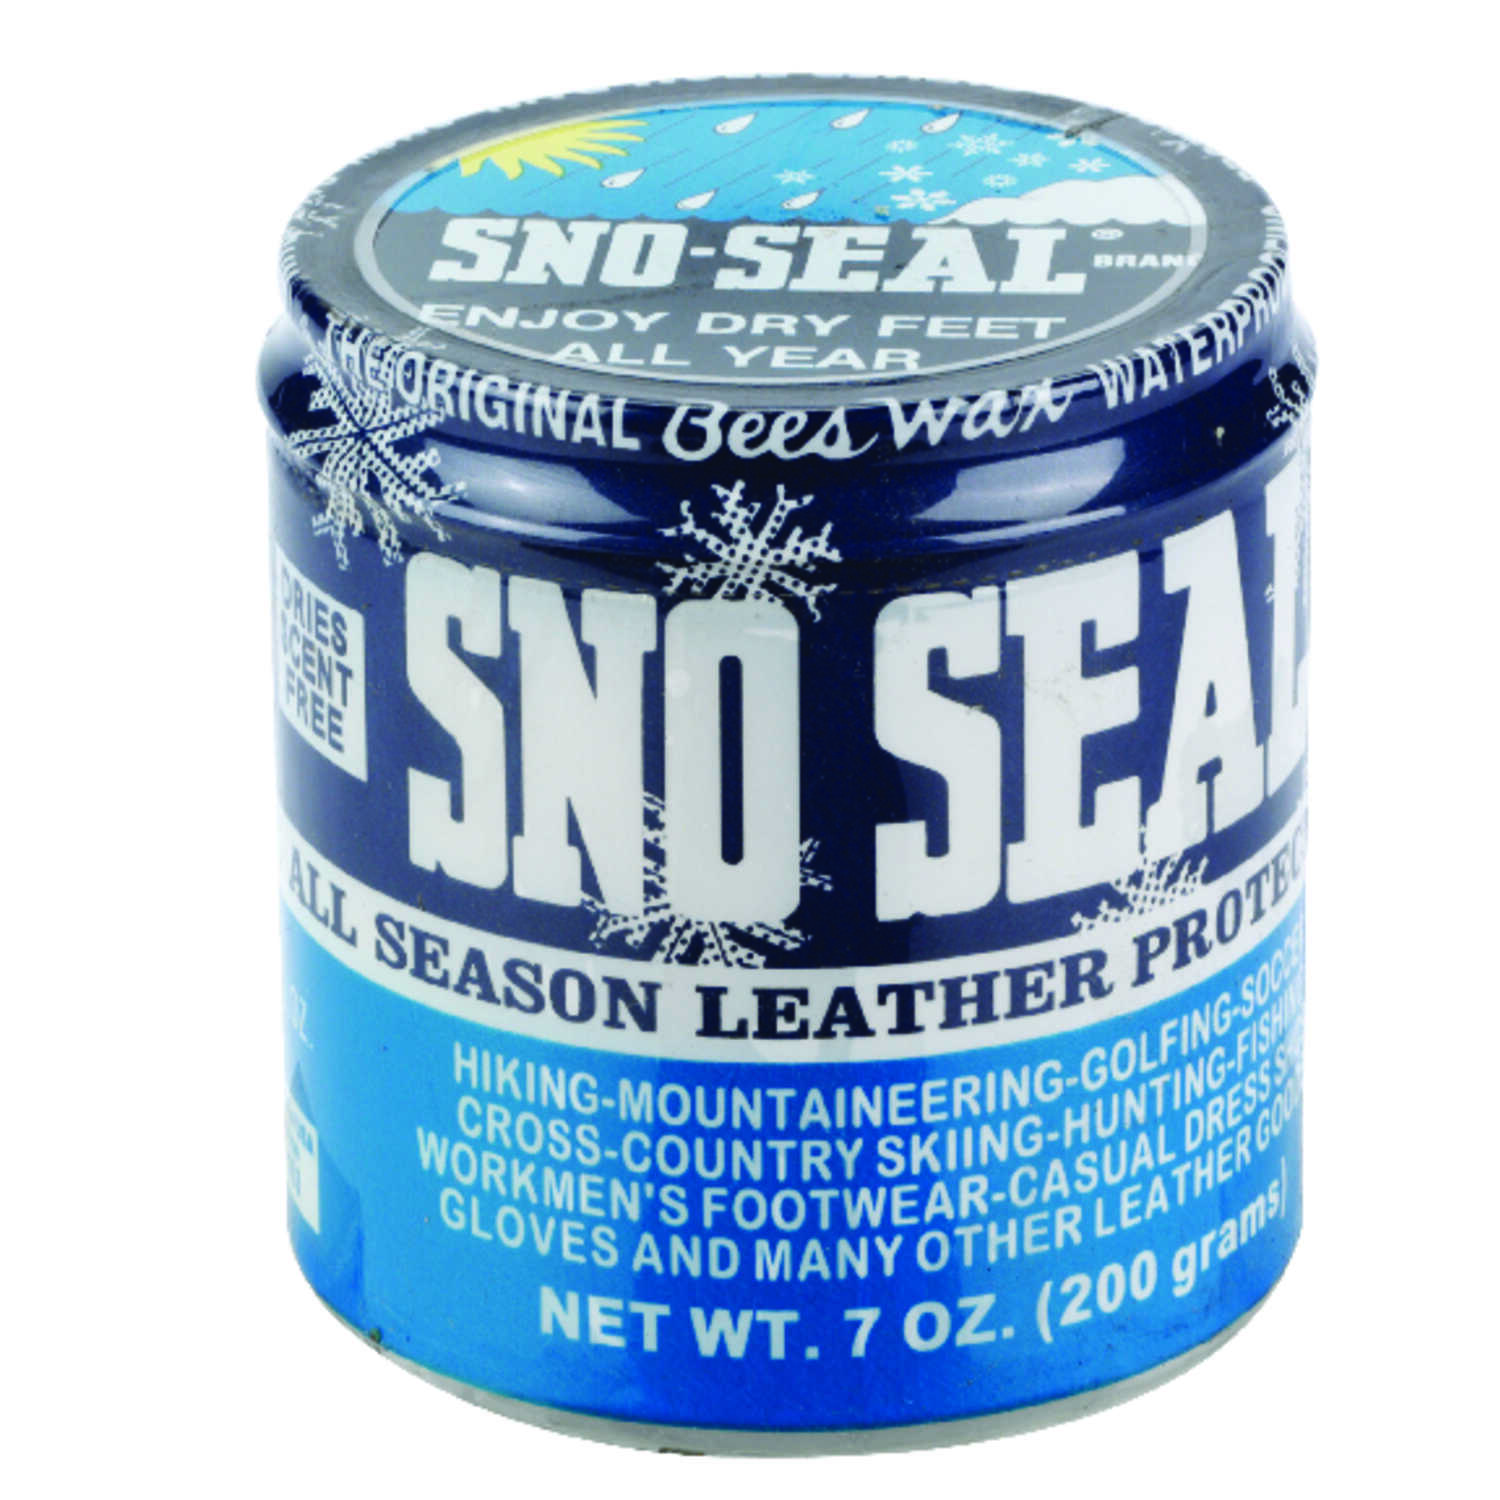 ff39d7670889 Atsko Sno-Seal Clear Leather Protector 7 oz. - Ace Hardware